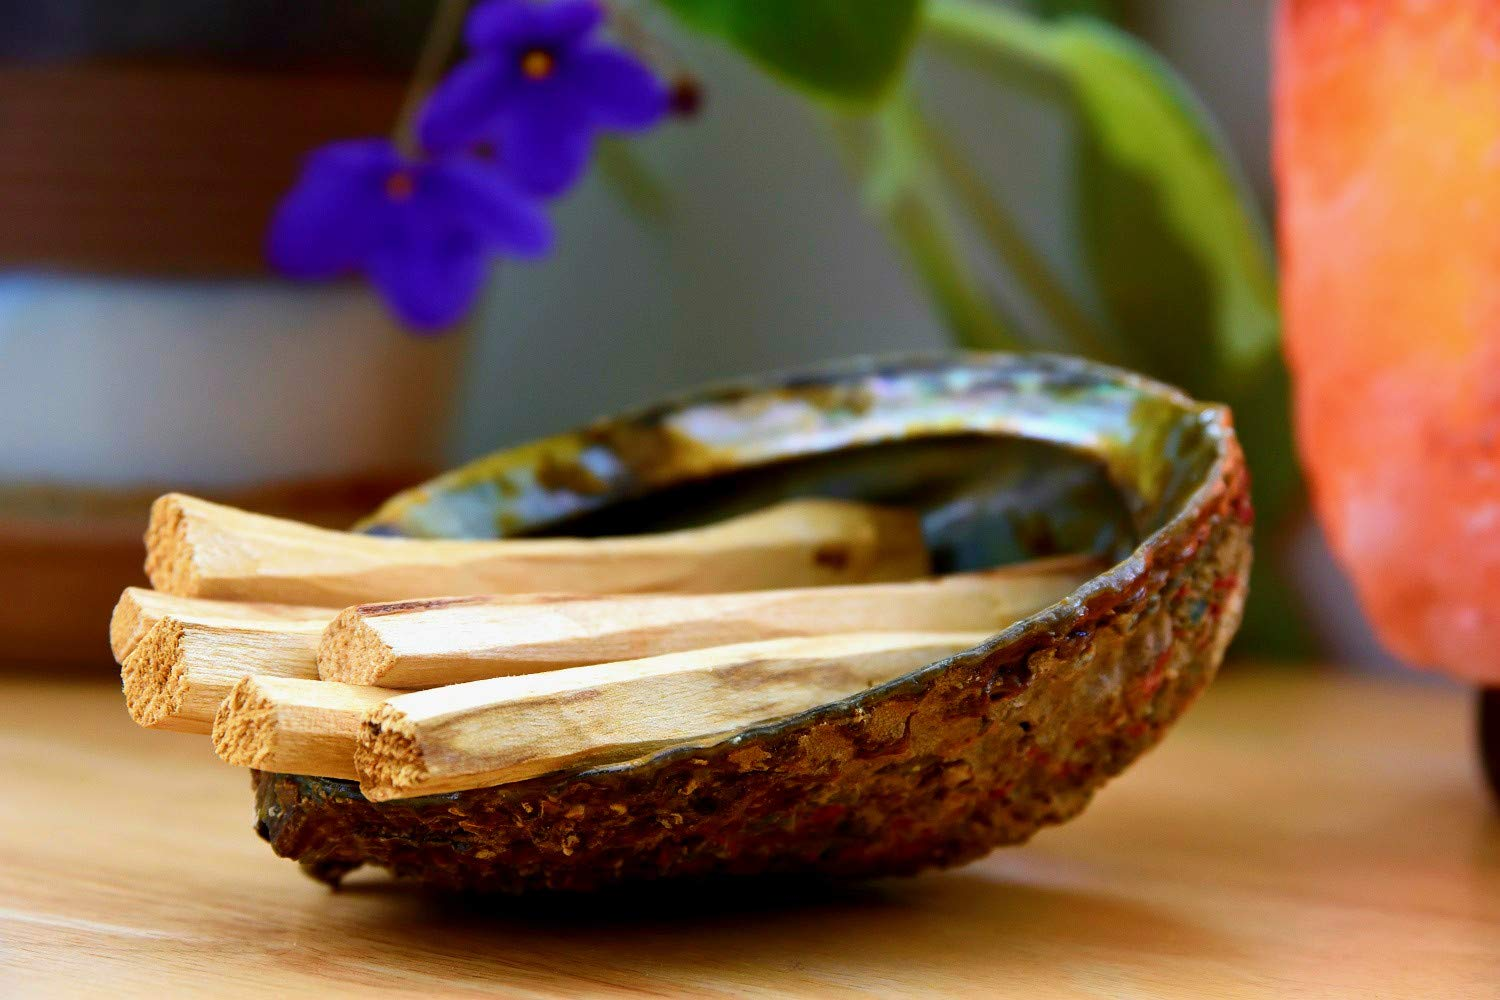 Santo Spirit Palo Santo Holy Wood Incense Smudge Sticks - 20 Pack Free Bonus 3 Palo Santo Incense Cones | 100% Natural | Hand Cut | High Resin | Sustainably Sourced | Clears Negative Energy by Santo Spirit (Image #3)